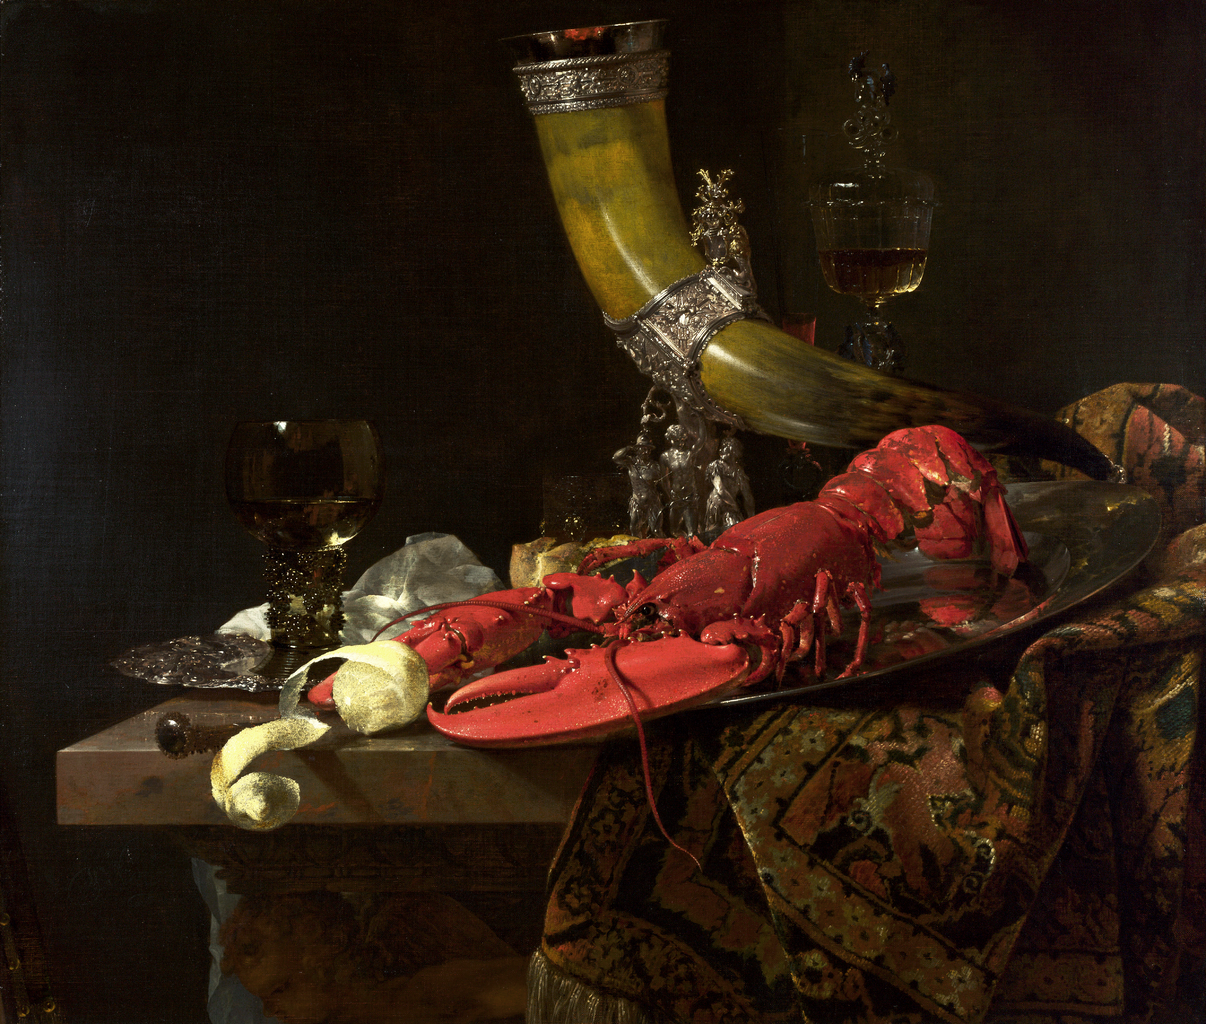 an analysis of mantets still life A stereotypical spanish still life rests next to his espadrille-clad feet similarly, victorine meurent, the female model of mademoiselle v ( 2910053 ), is shown wearing men's clothes, as well as shoes that are impractical for a bullfighting ring.